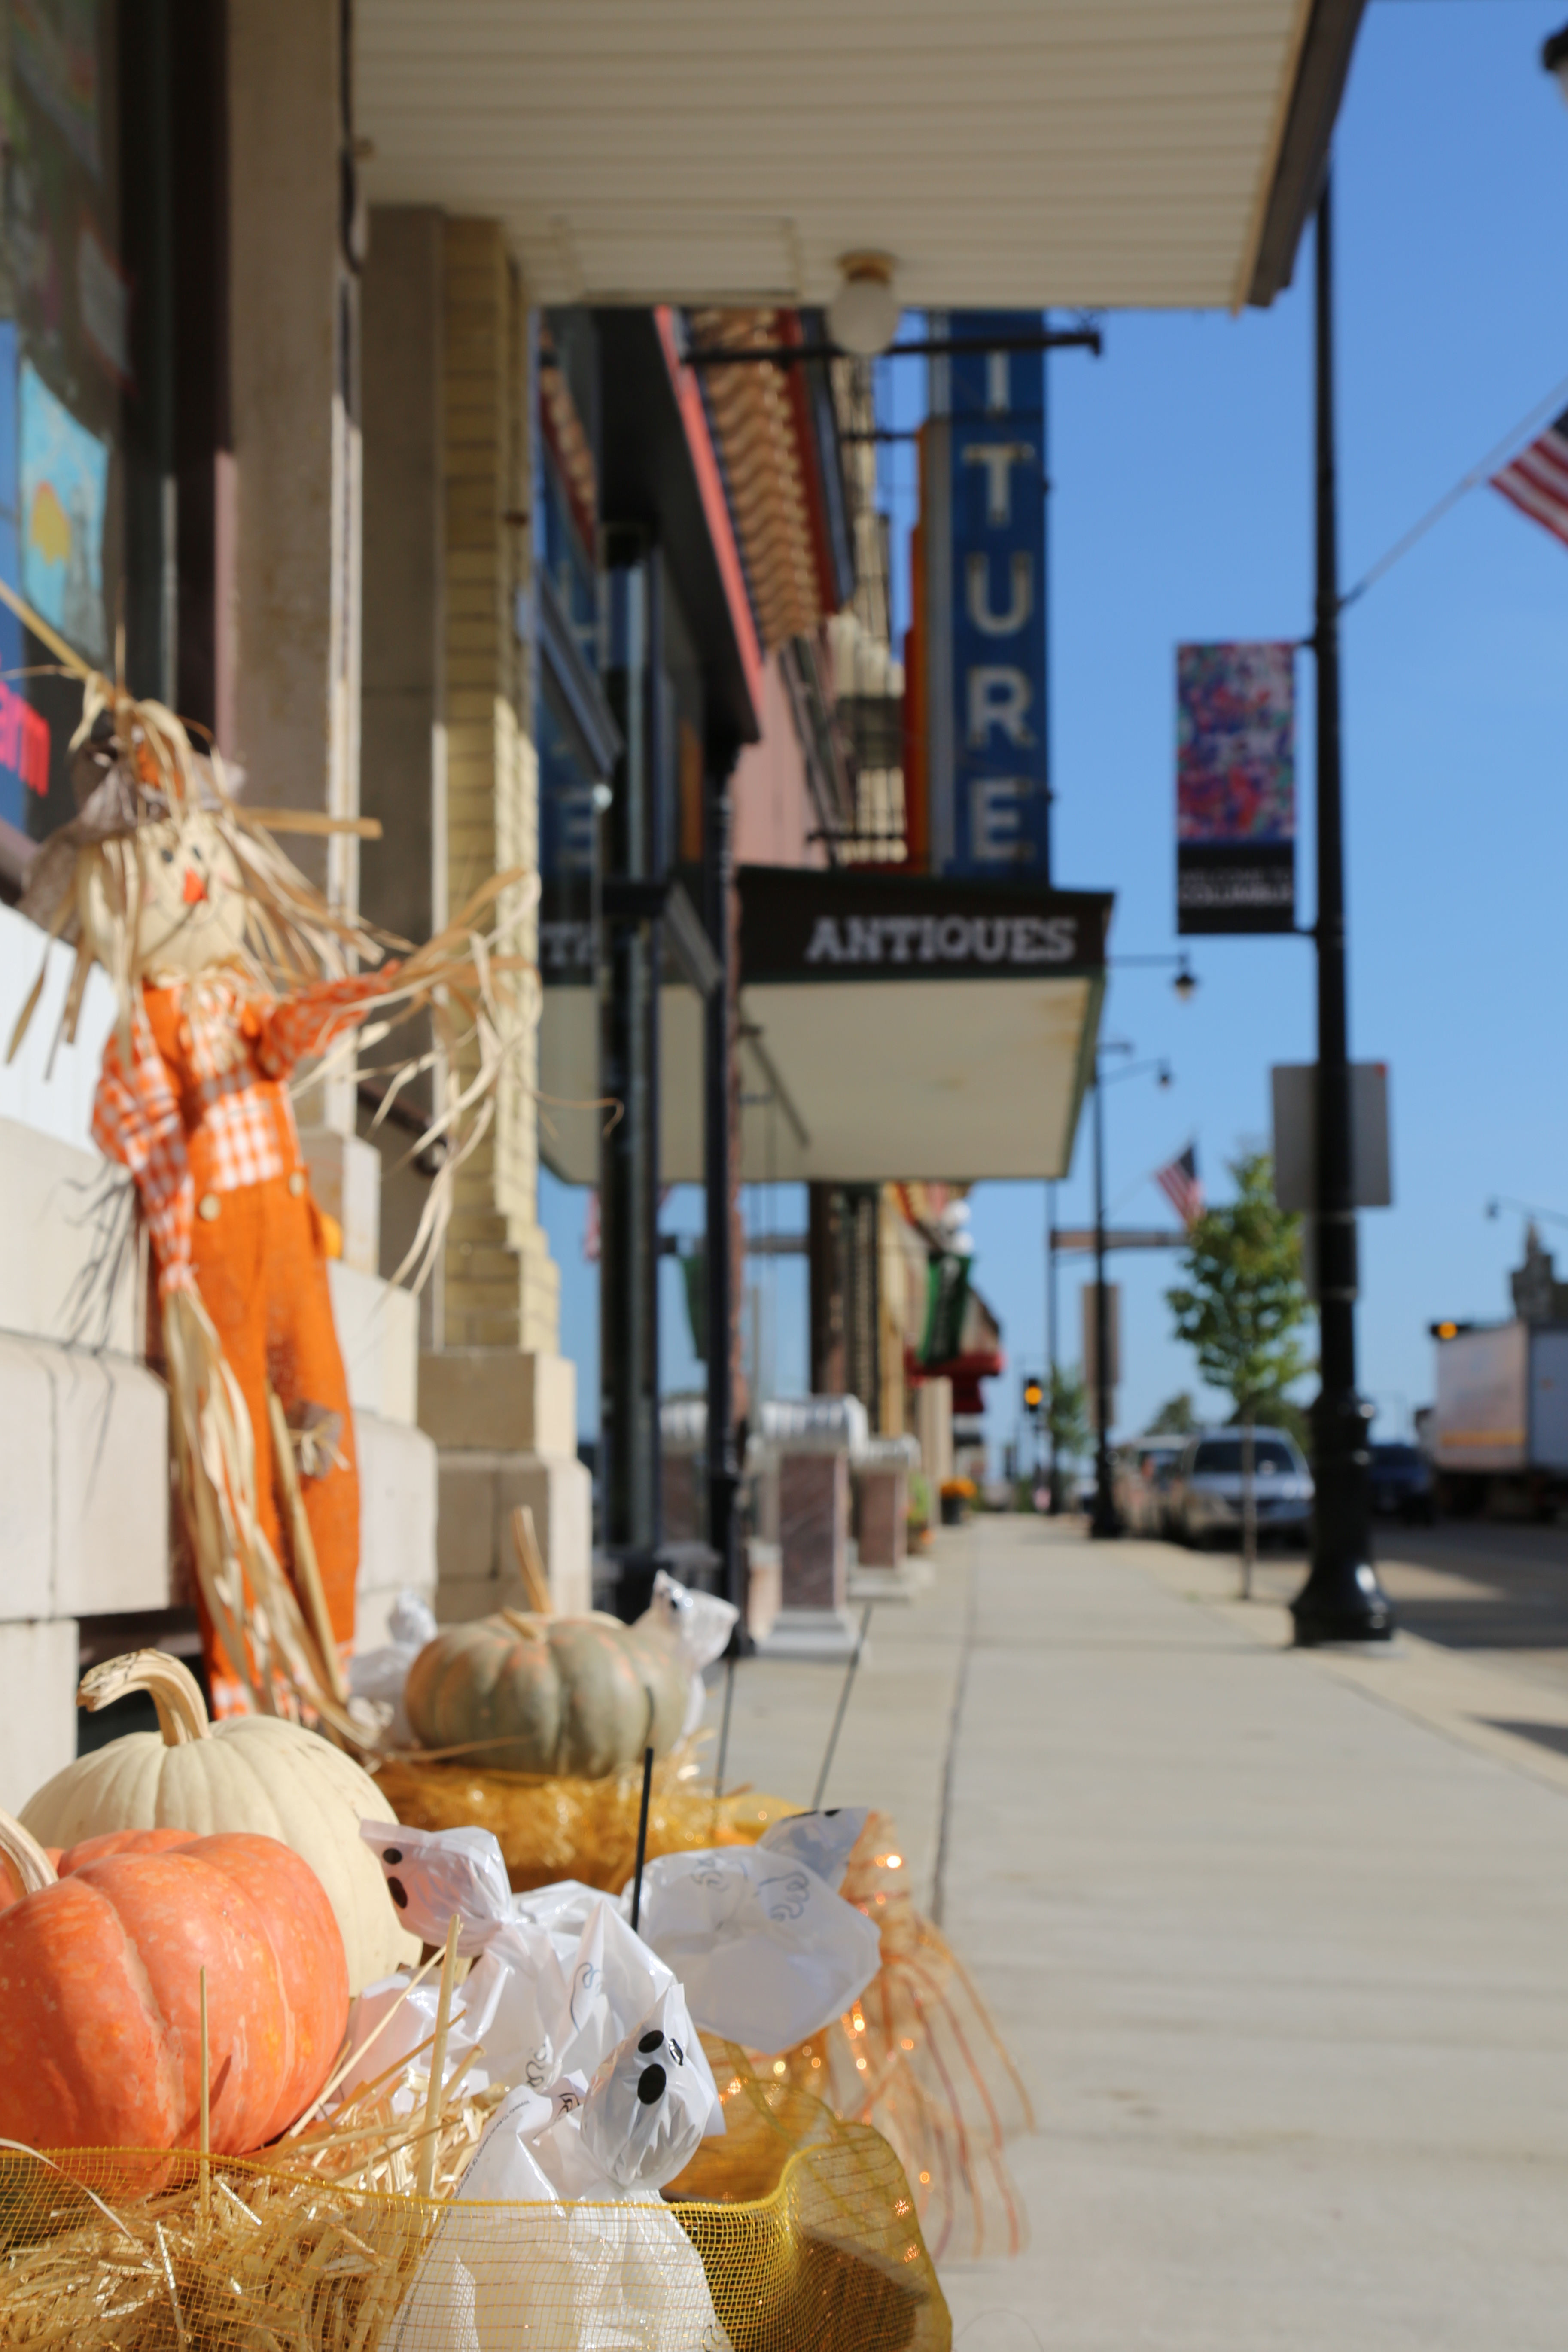 Scarecrows, straw bales, and pumpkins in front of a down town shop